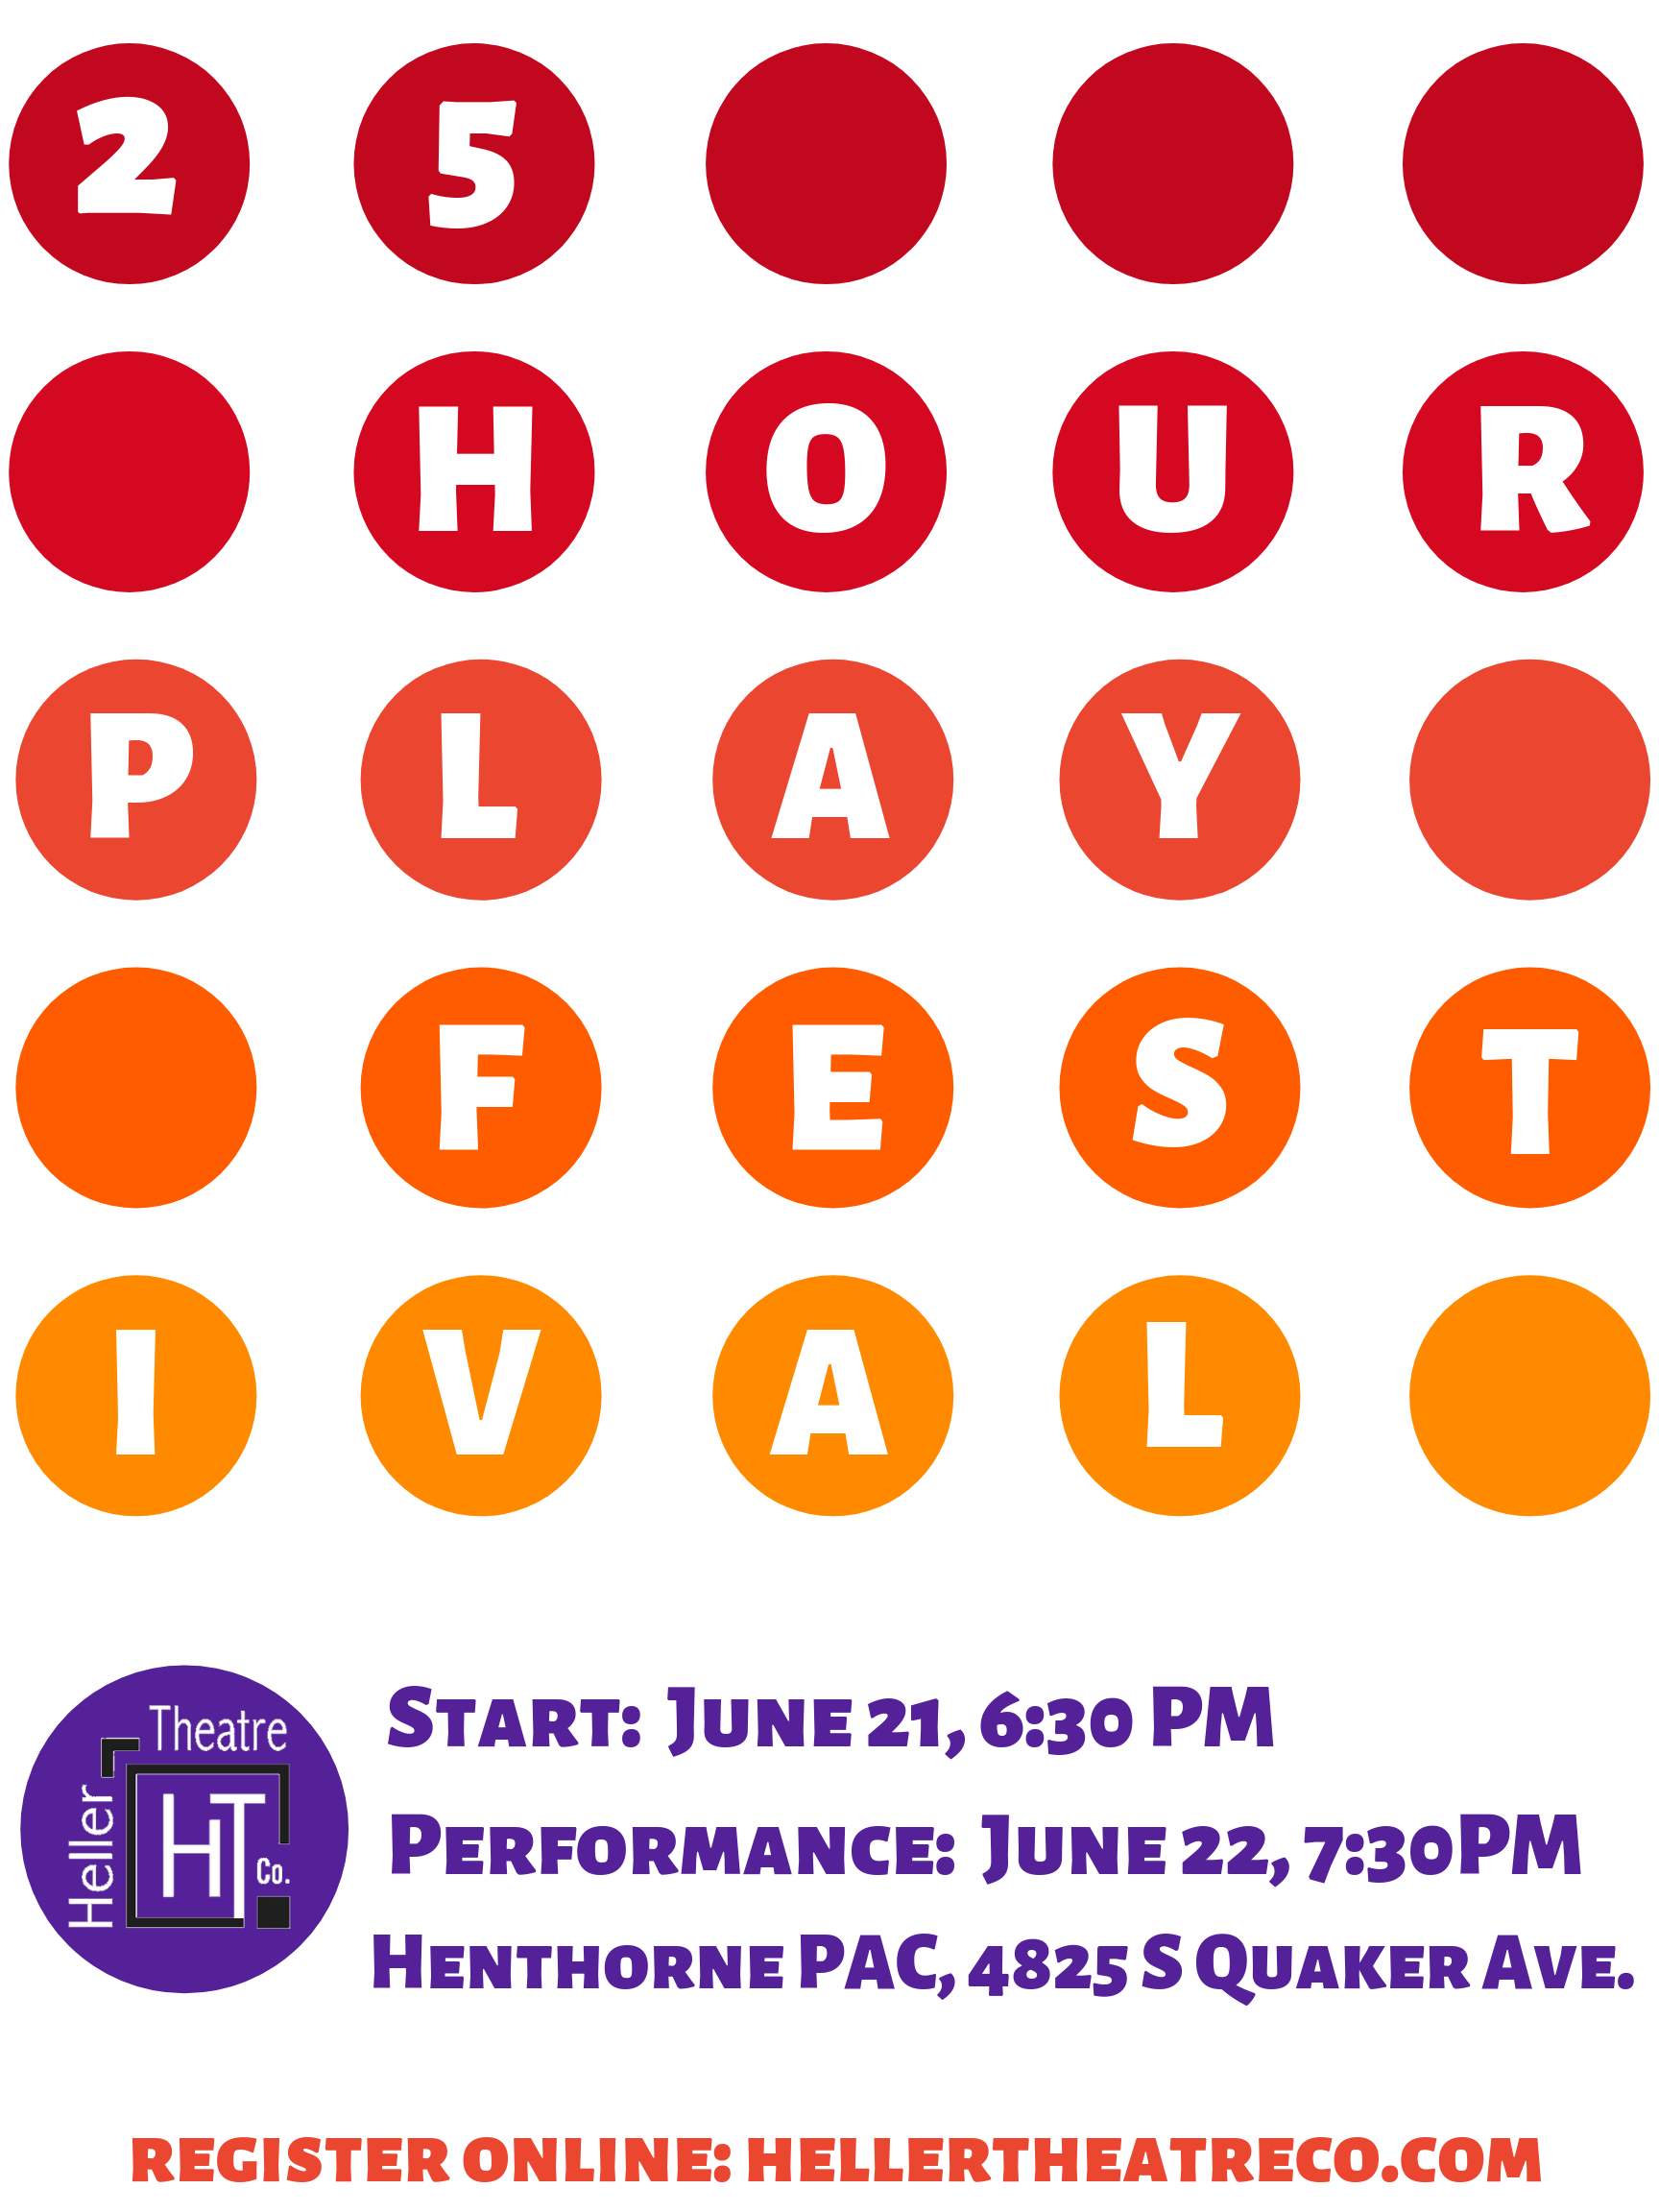 25-Hour Play Festival Poster Sketches.png